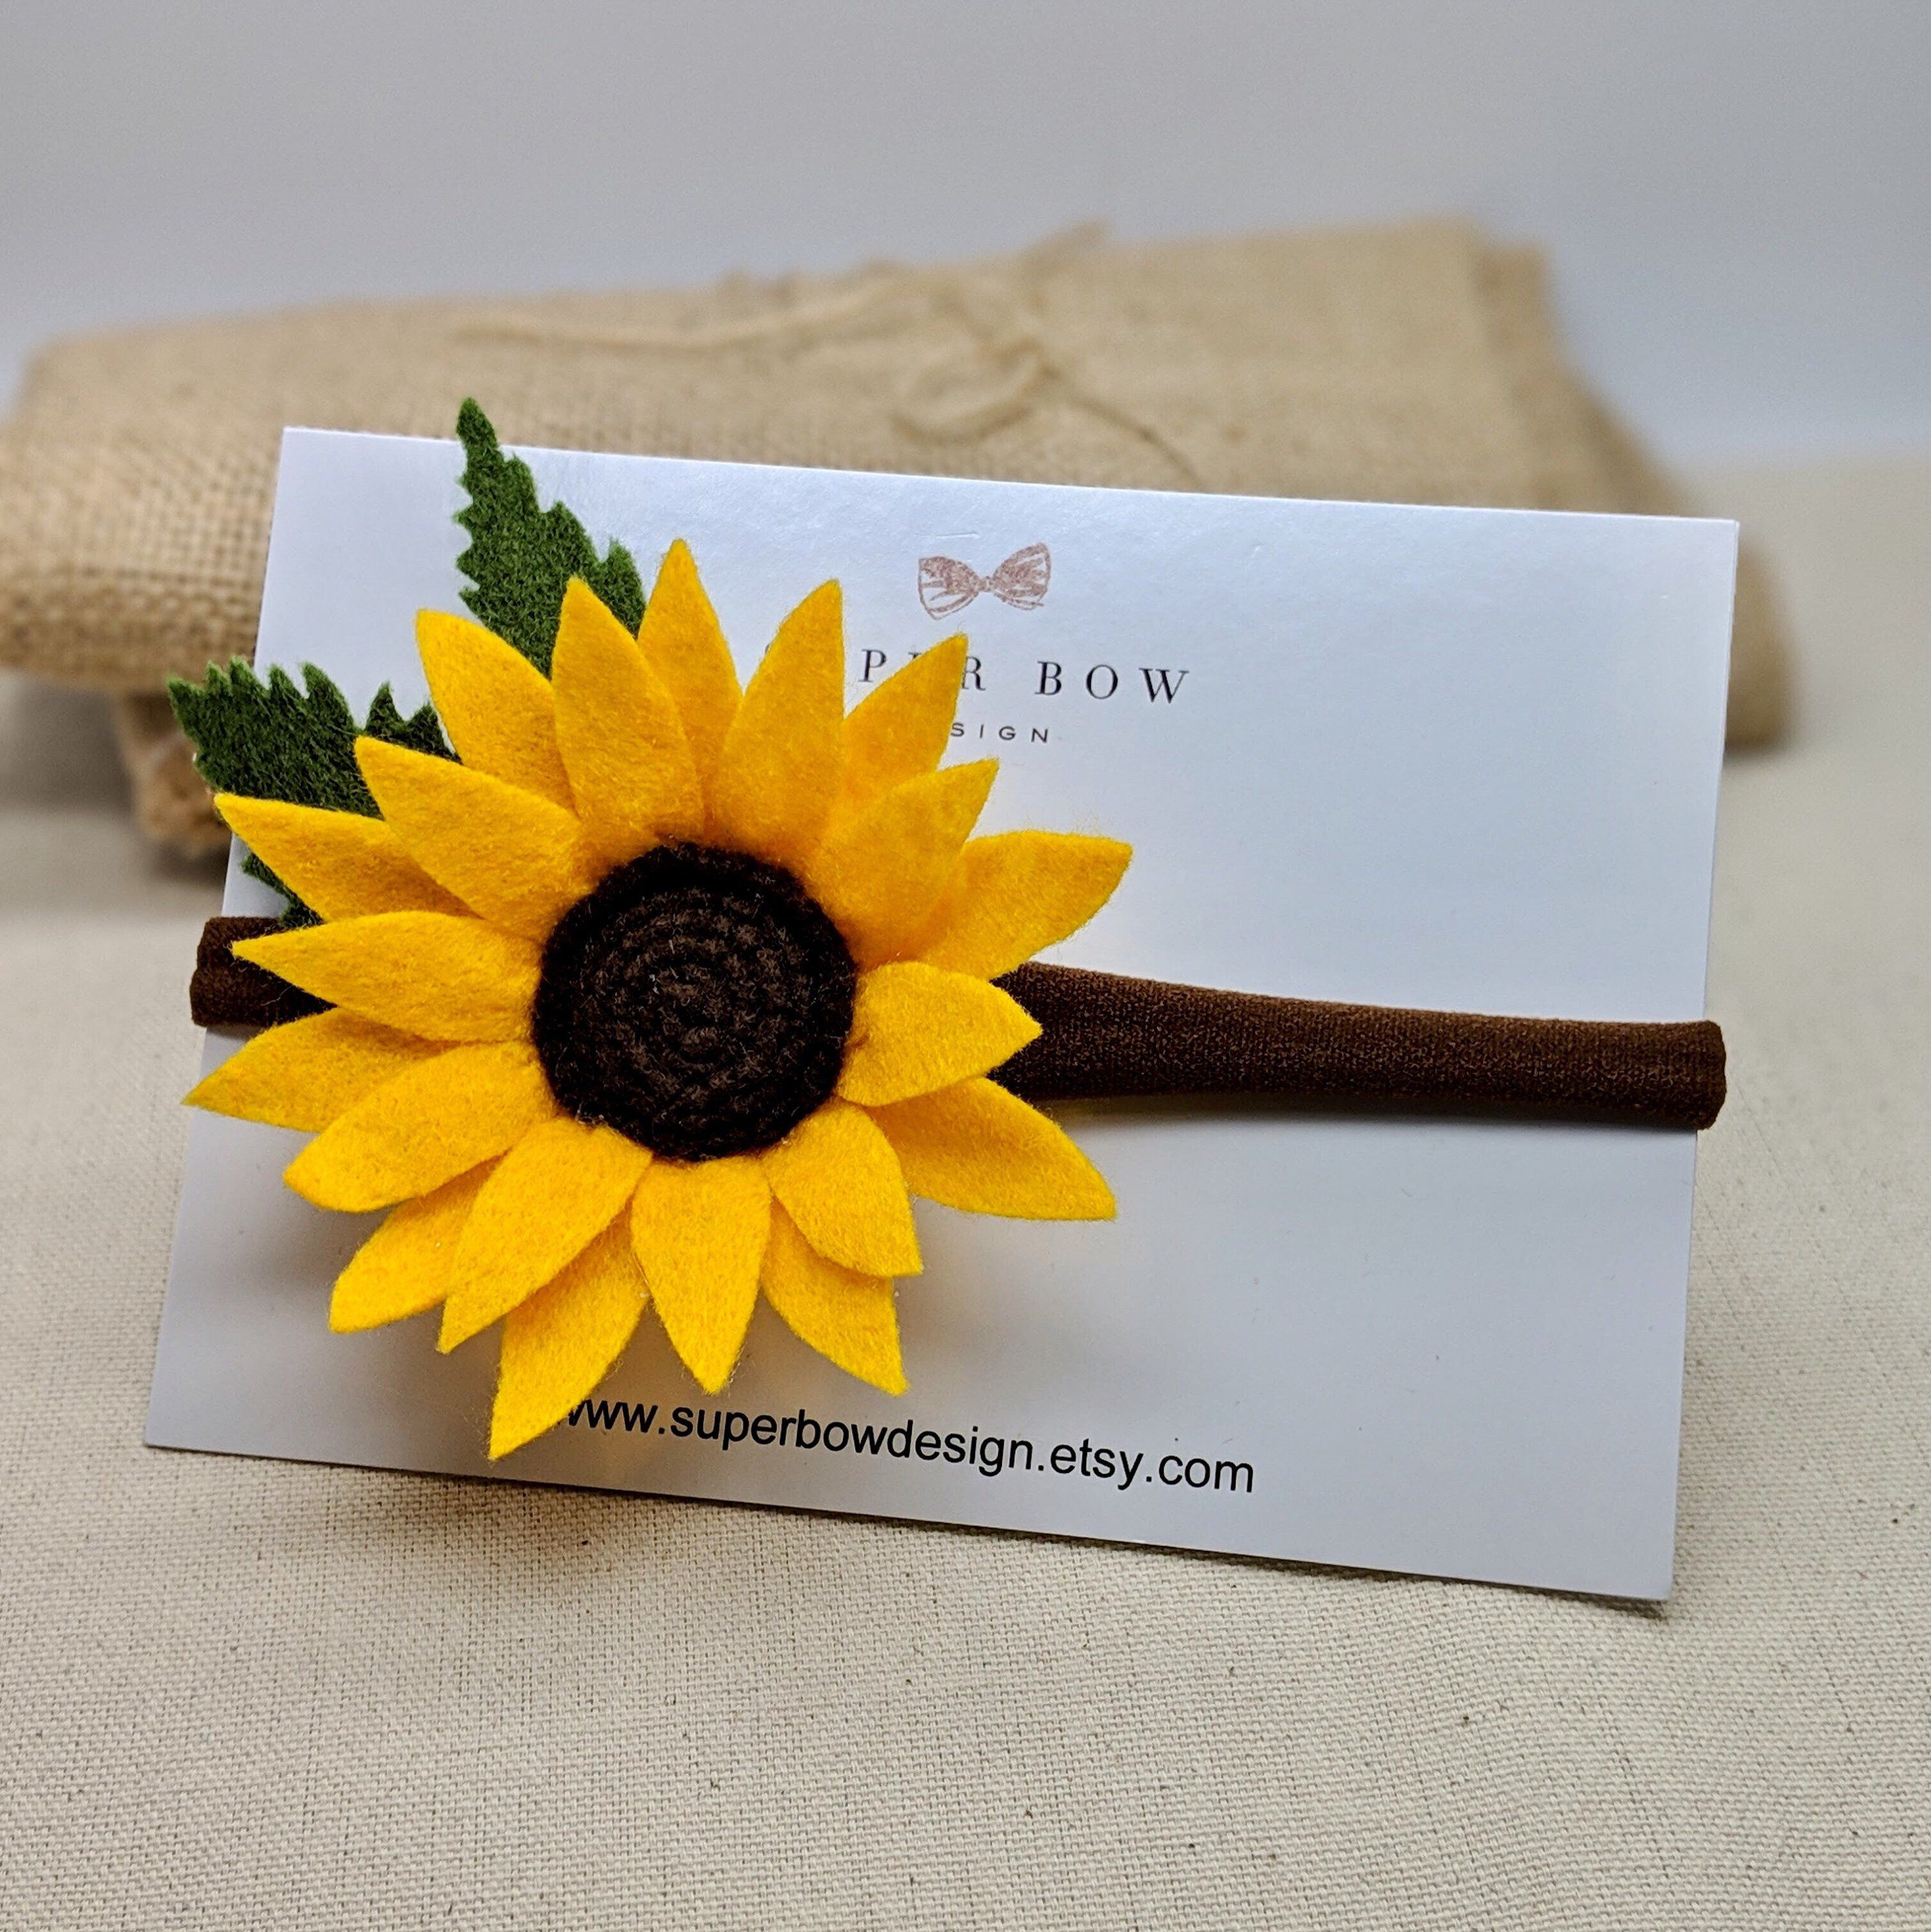 Sunflower Flower Baby Headband, Felt Sunflower Headband, Nylon Nude Headband with Orange Yellow Flower, Girl Hair Accessories